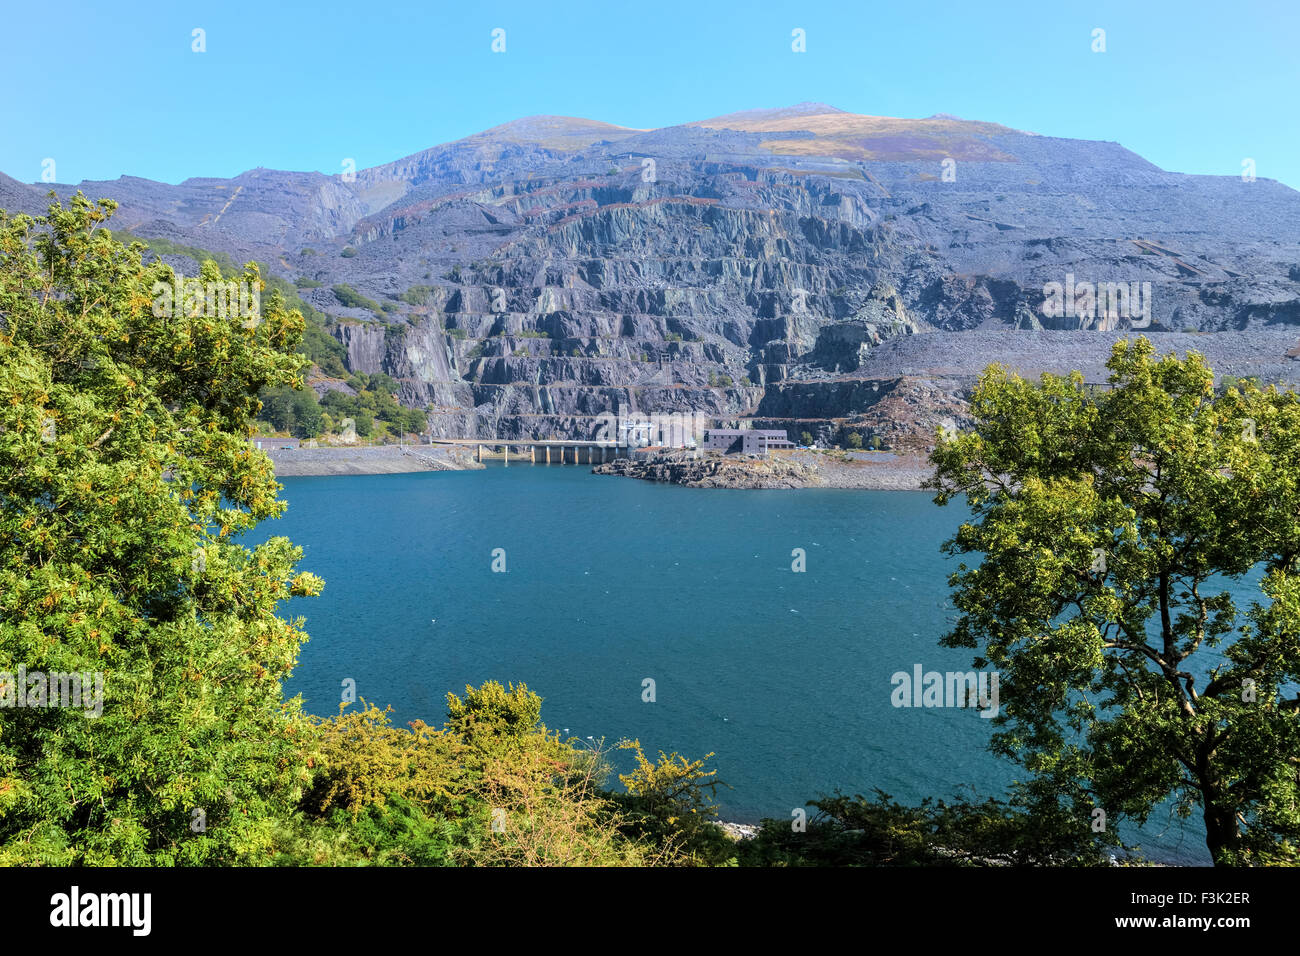 Dinorwic Quarry, Llanberis, Wales, United Kingdom - Stock Image